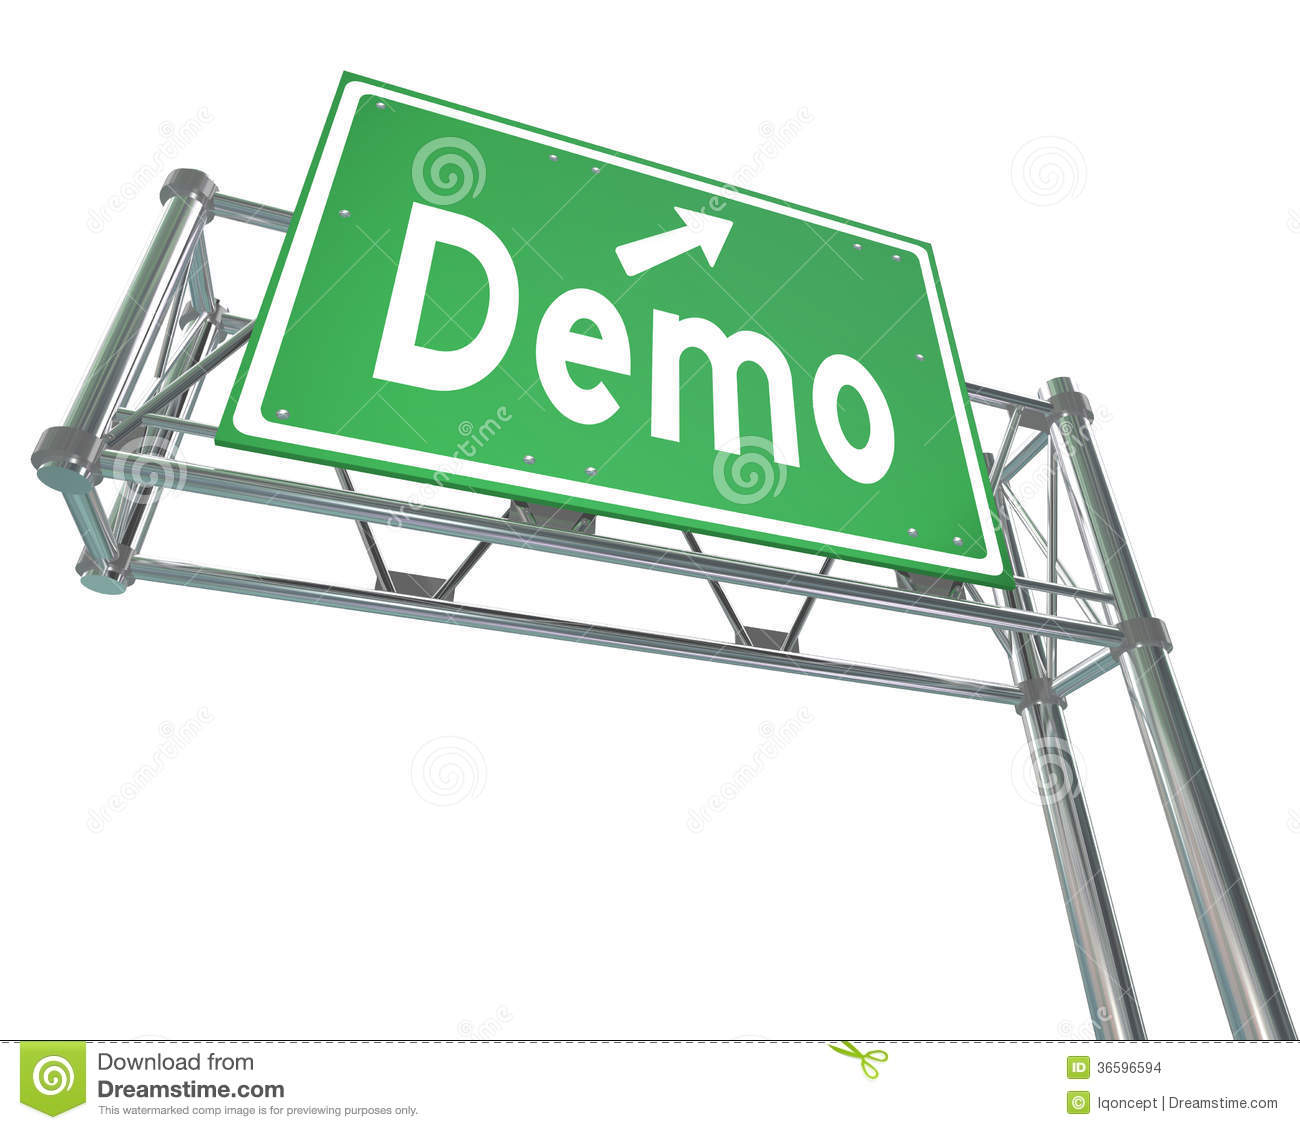 Demo word green freeway sign product demonstration free